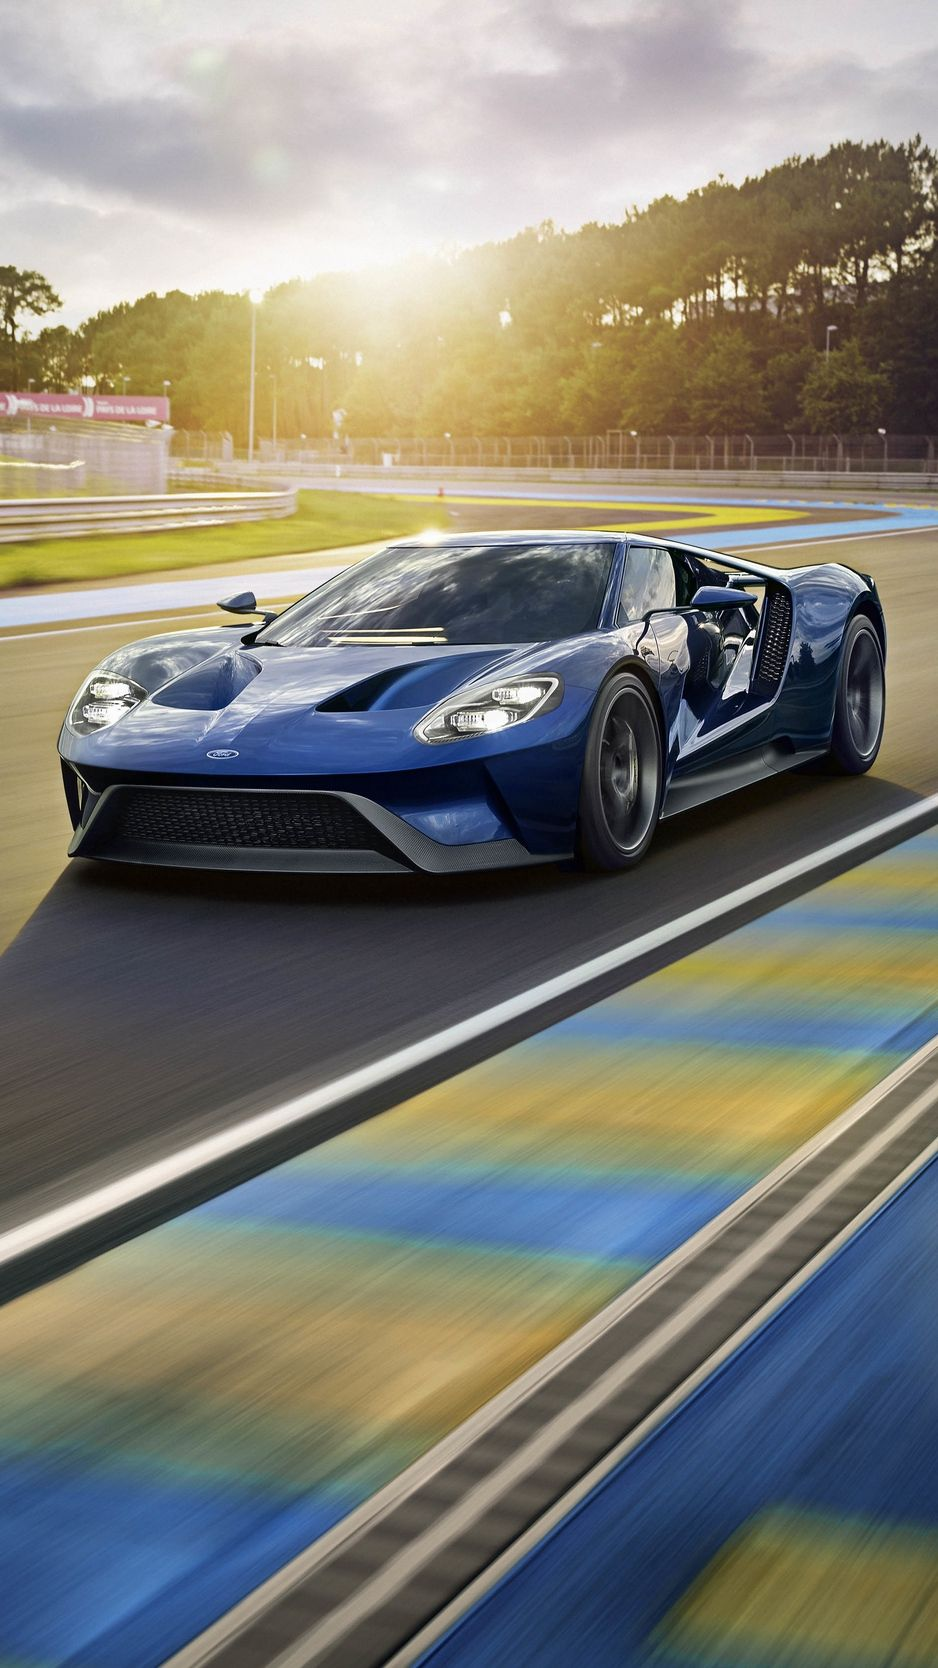 180 Gorgeous Cars Iphone Wallpapers Ford Gt Dream Cars Car Iphone Wallpaper